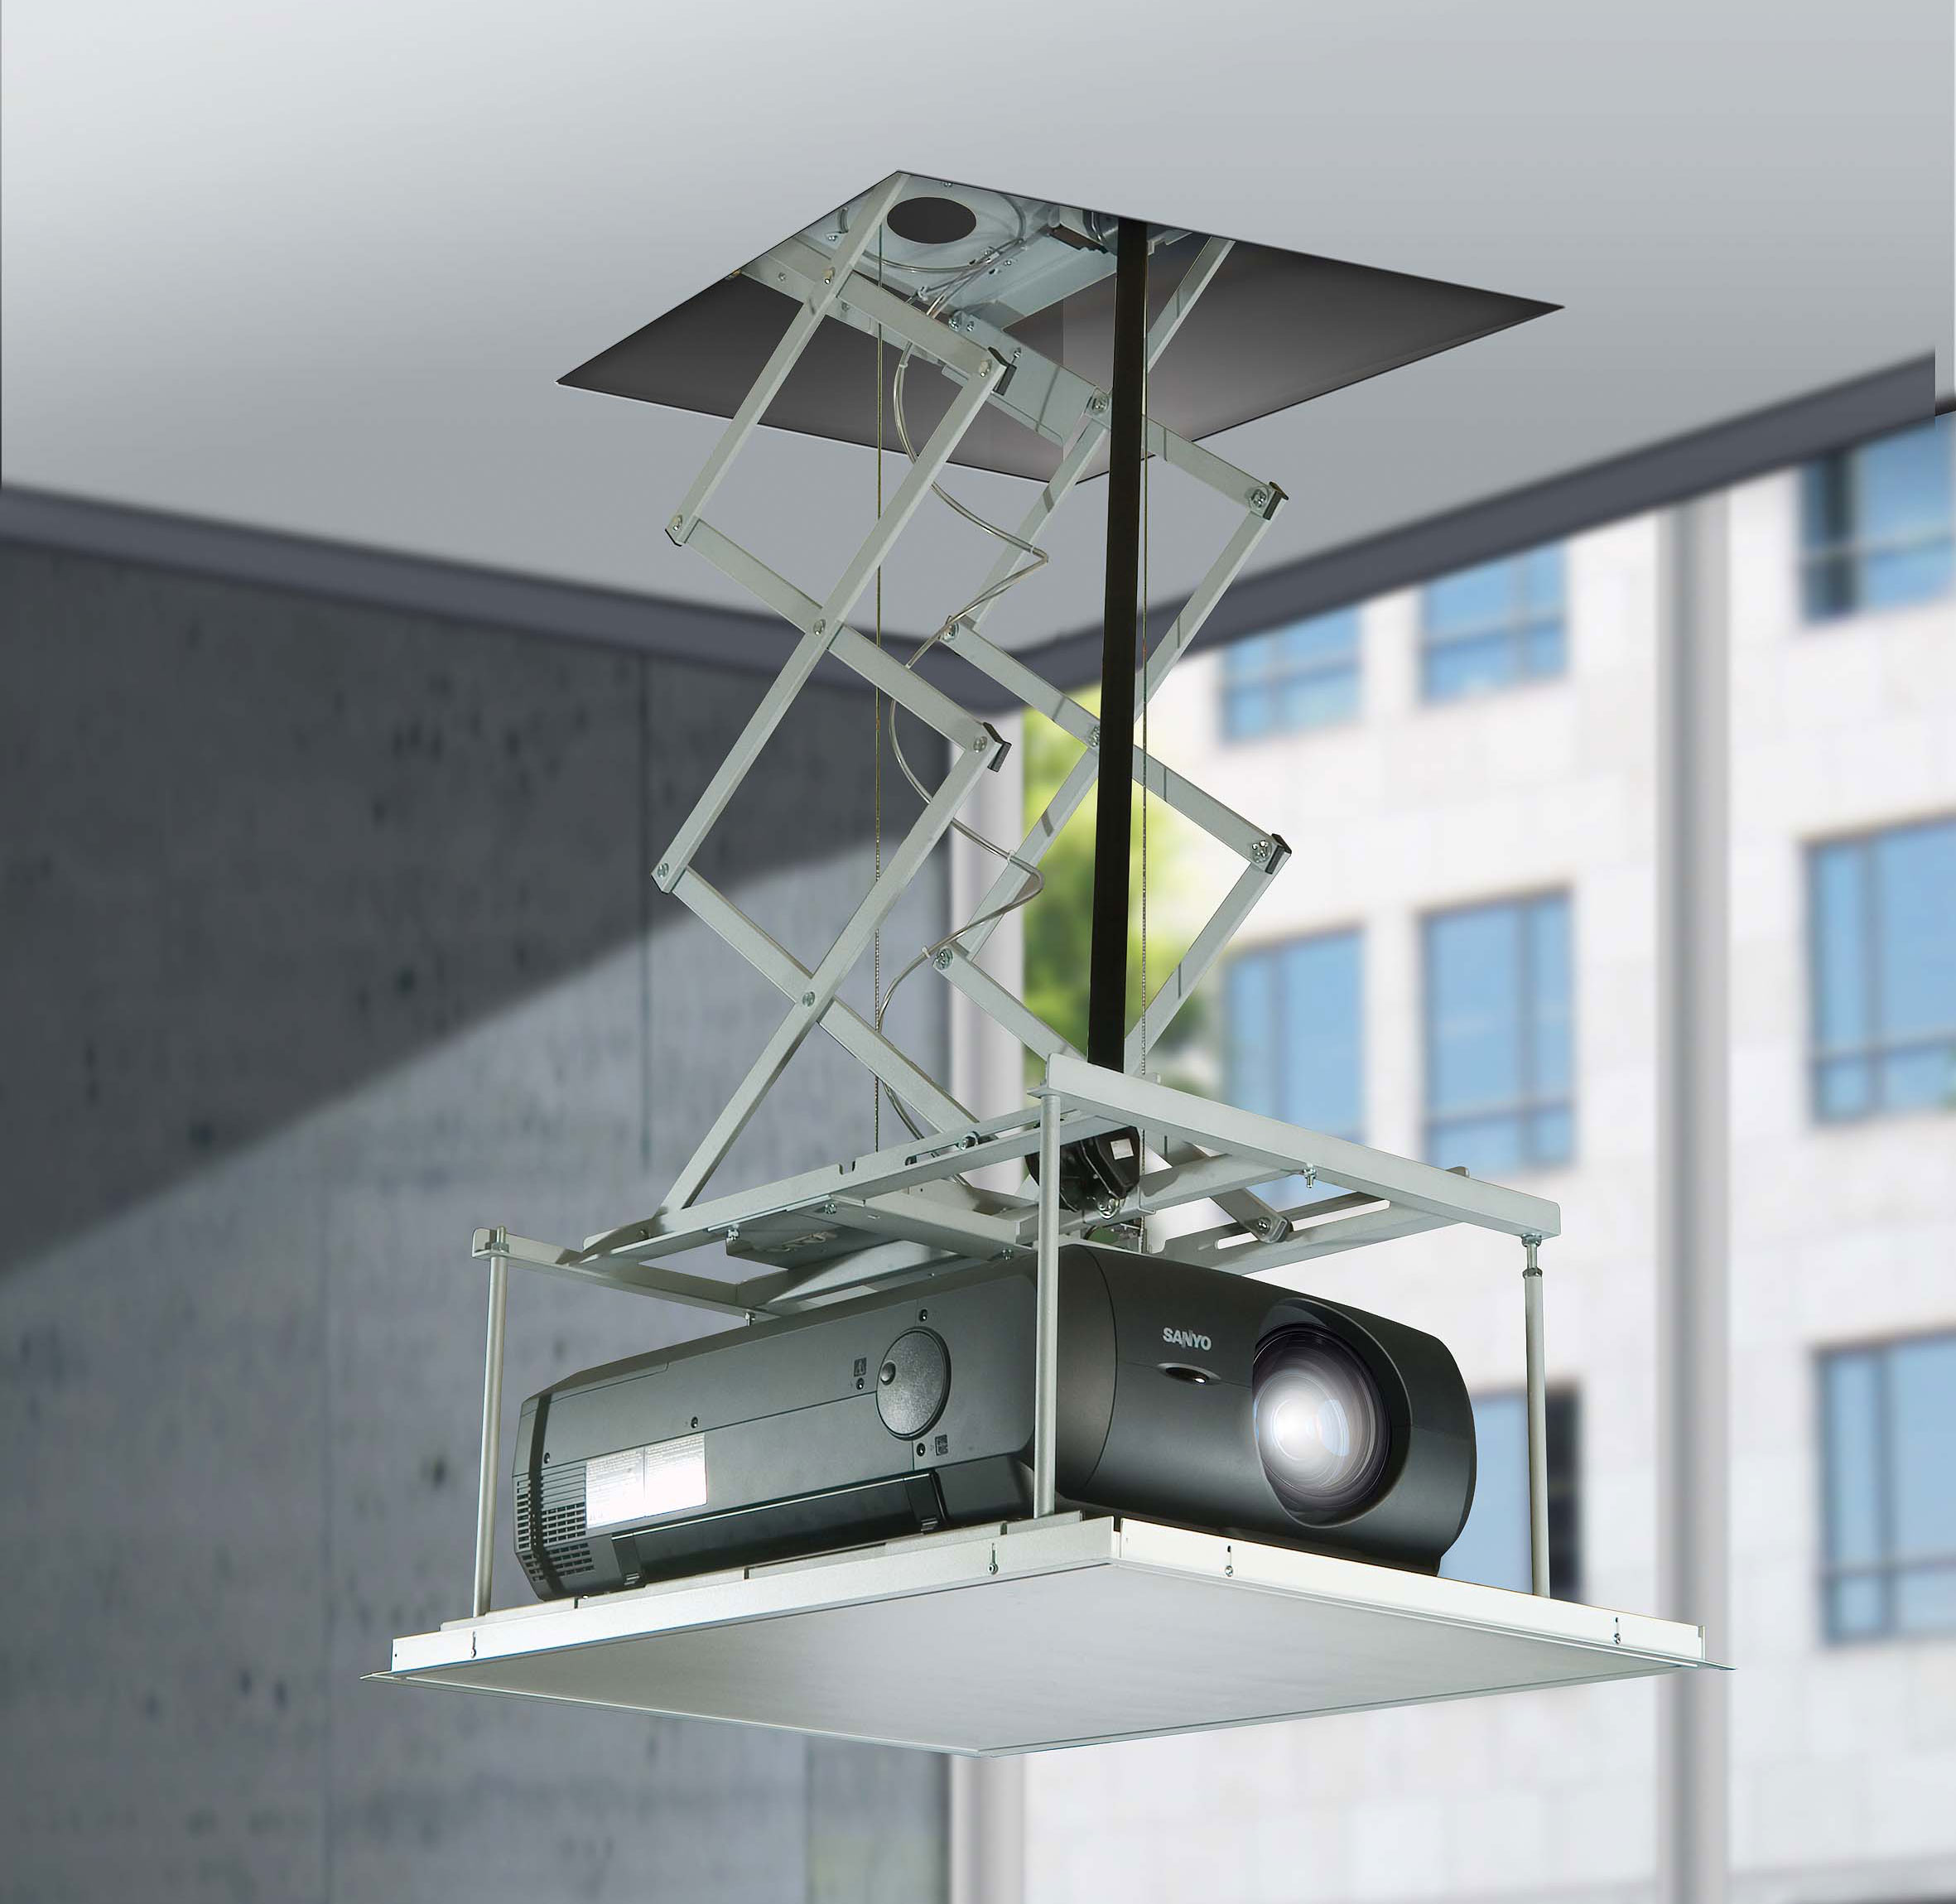 cynergylifts ceiling dsc storage ceilings lift pages